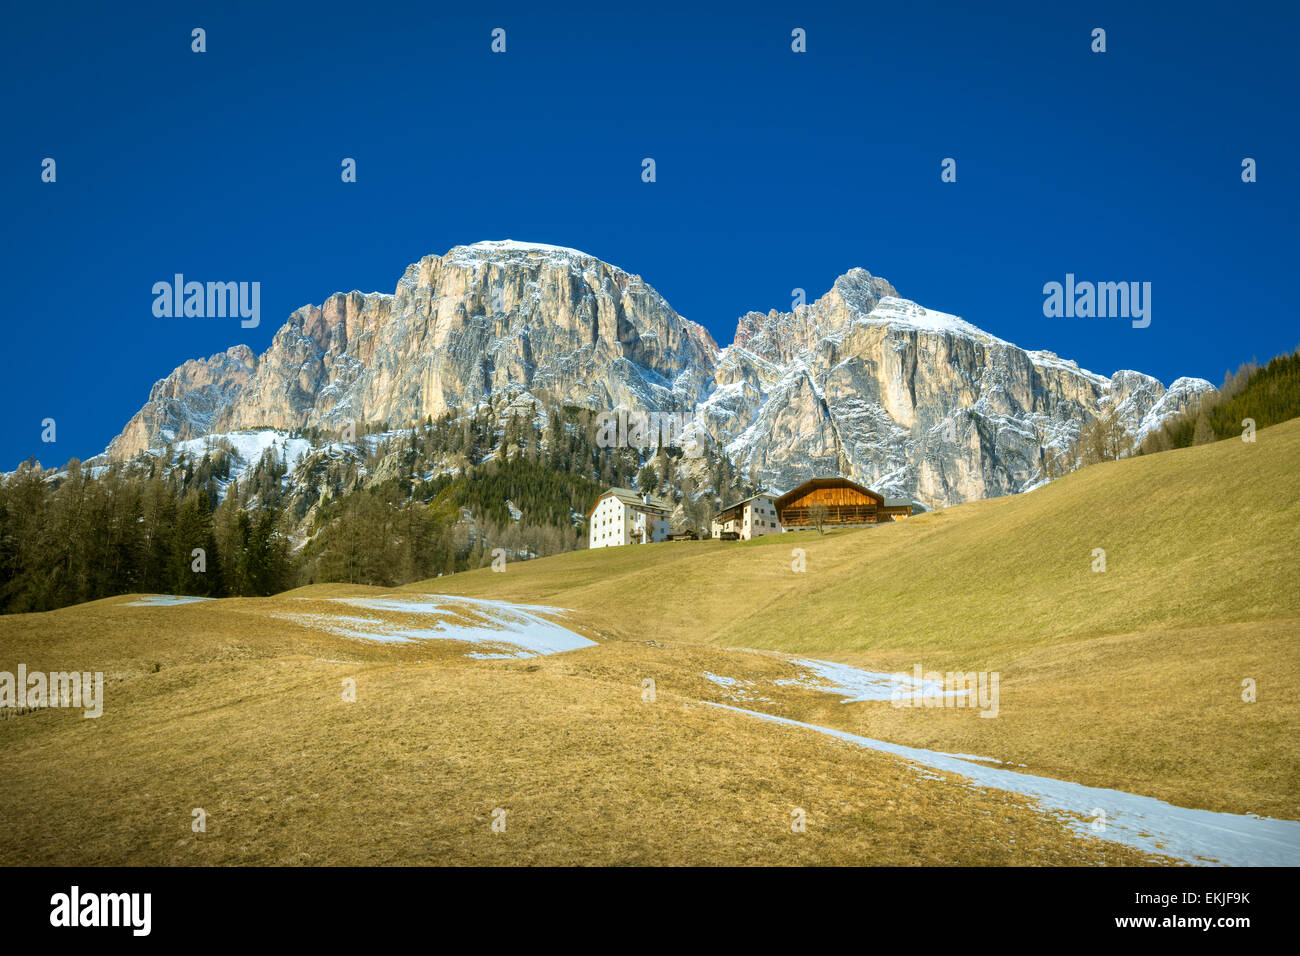 Corvara in Badia with Dolomites Dolomiti alps in background - Trentino Alto Adige, South Tyrol, Norther Italy - Stock Image